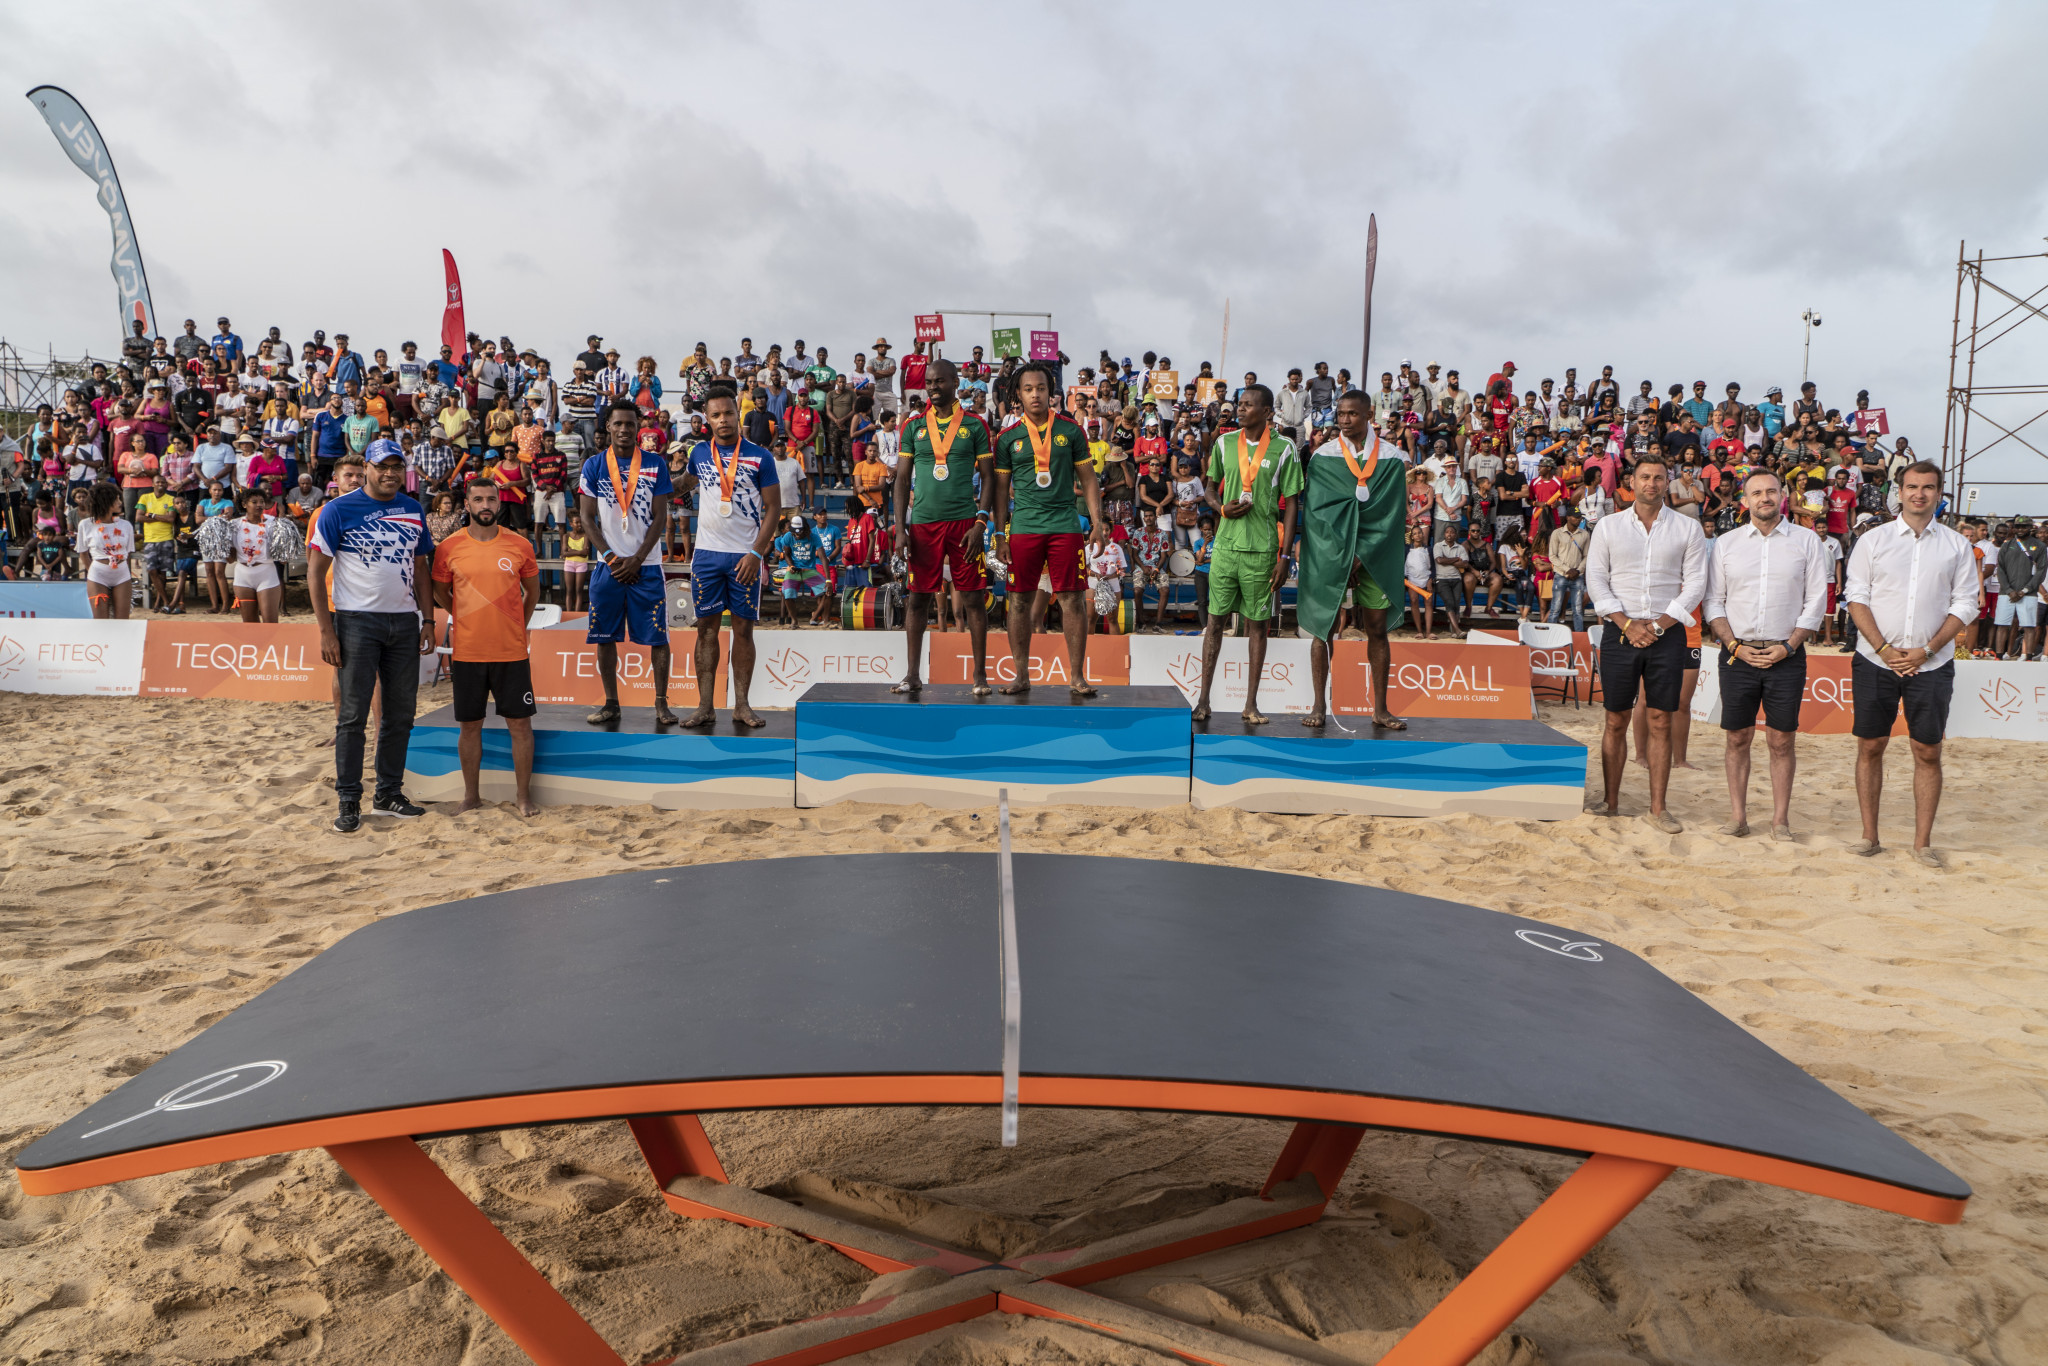 International Teqball Federation President delighted by sport's rising popularity in Africa